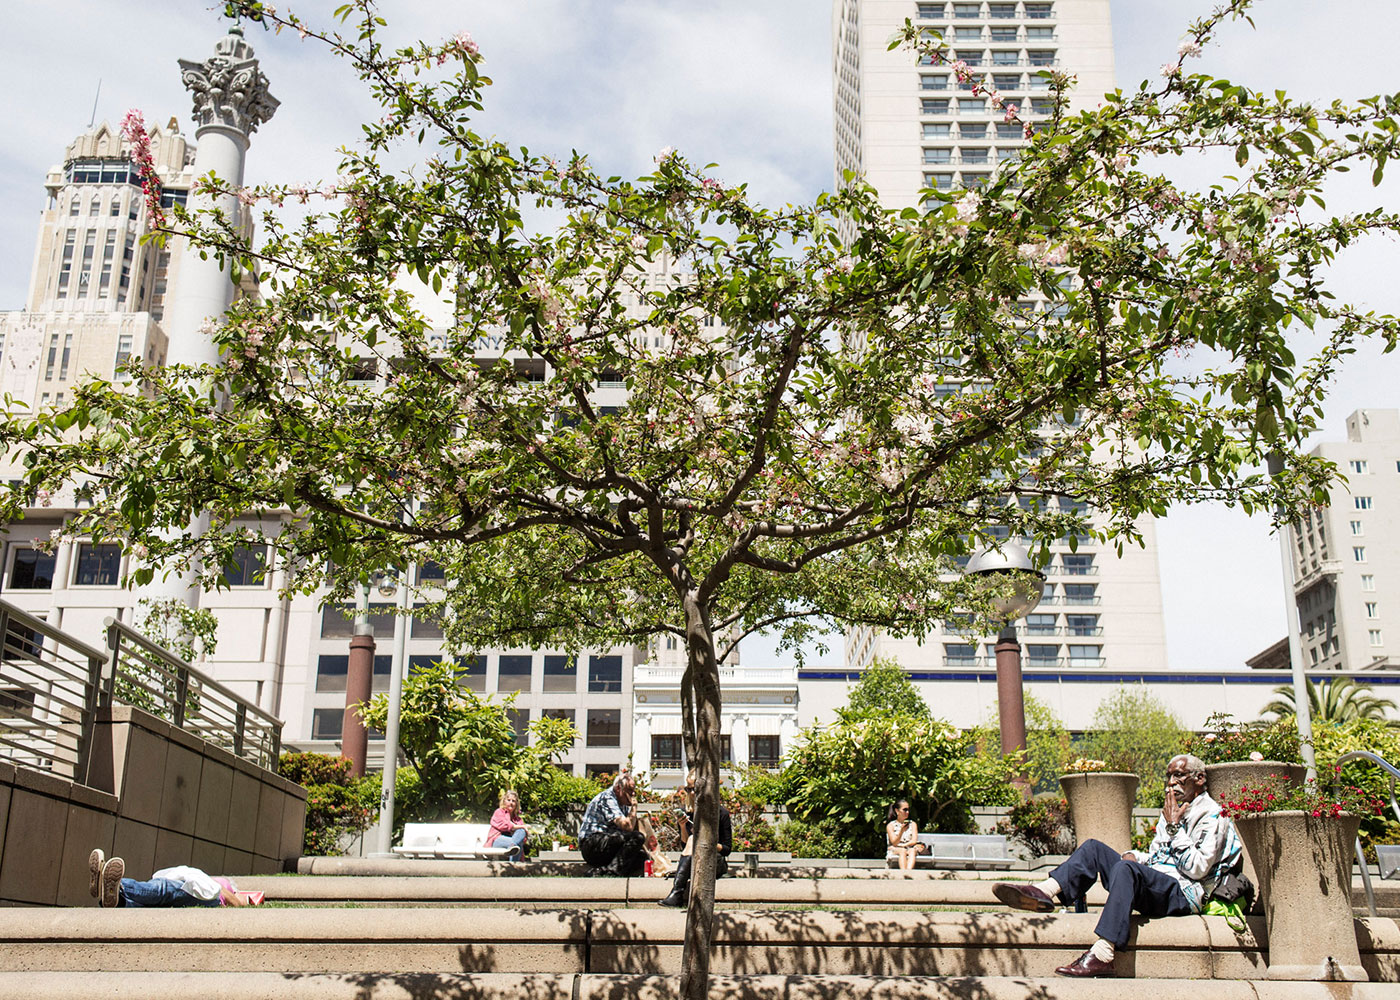 San Francisco, CA, USA. People relaxing under a tree at Union Square.